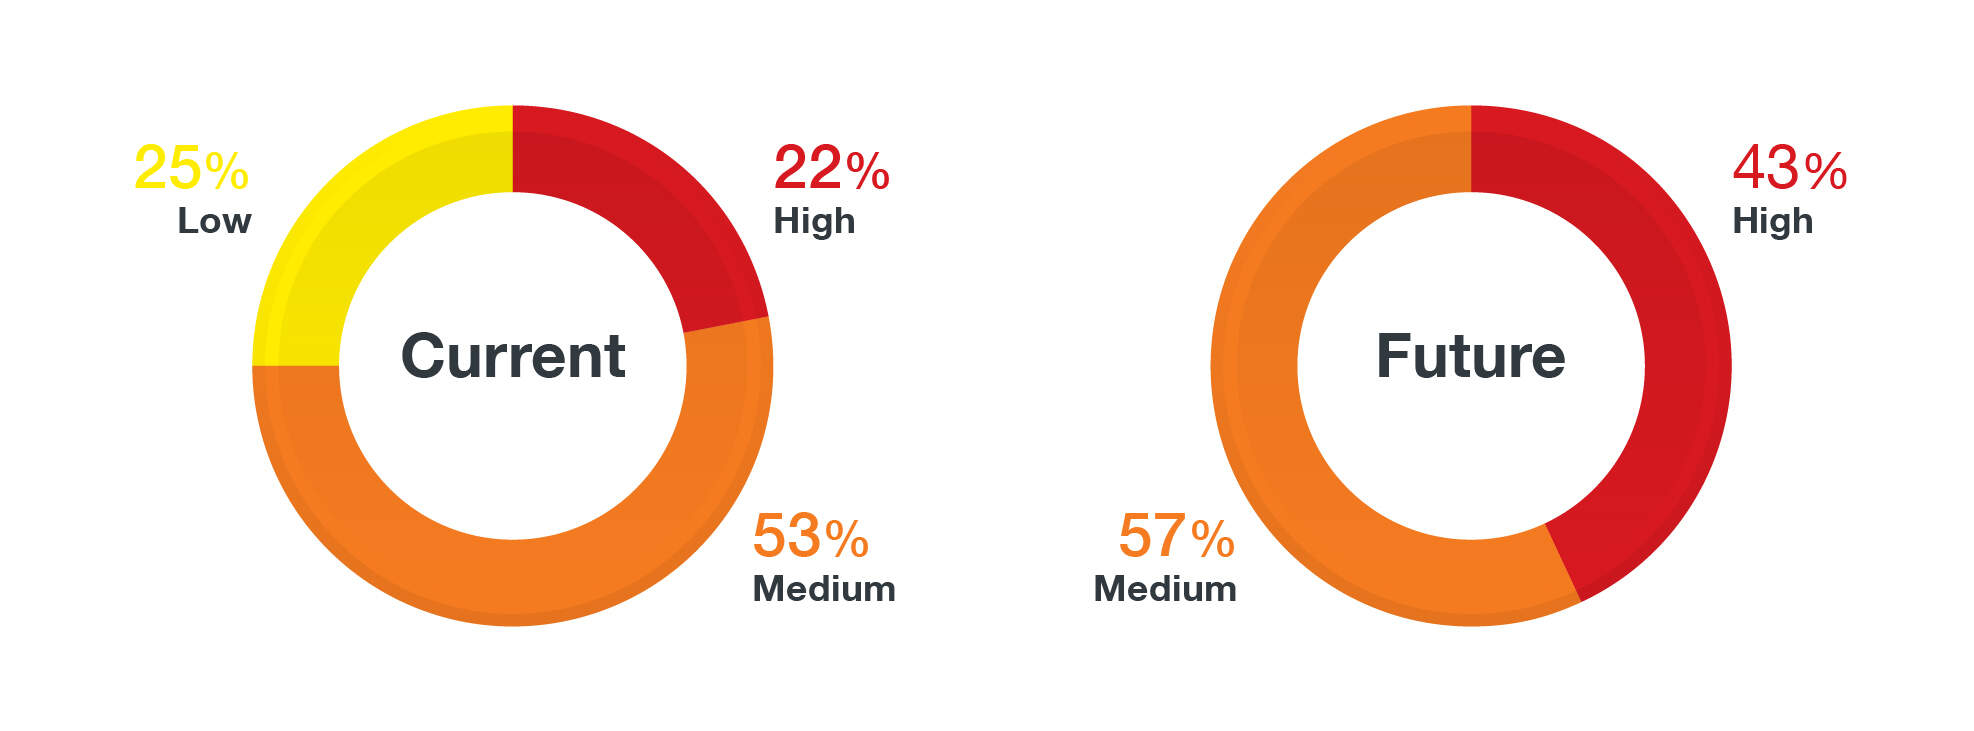 Figure 2. A comparison between current and future percentages of risks that fall under each of the three risk-levels.